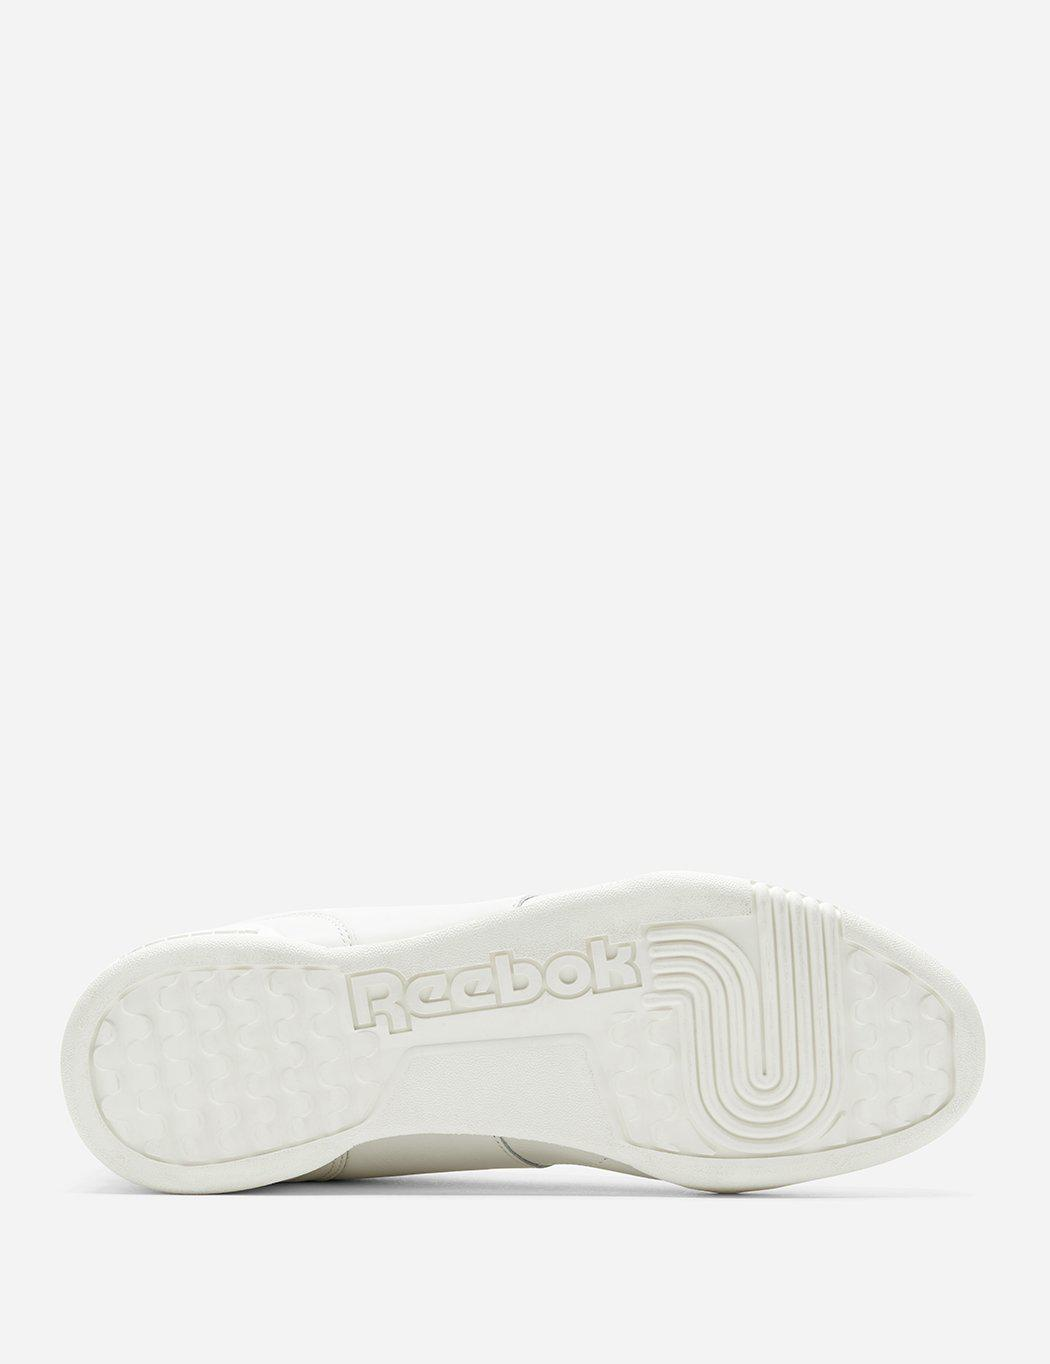 Reebok Rubber Workout Plus Mu (cn4966) in Chalk (White) for Men